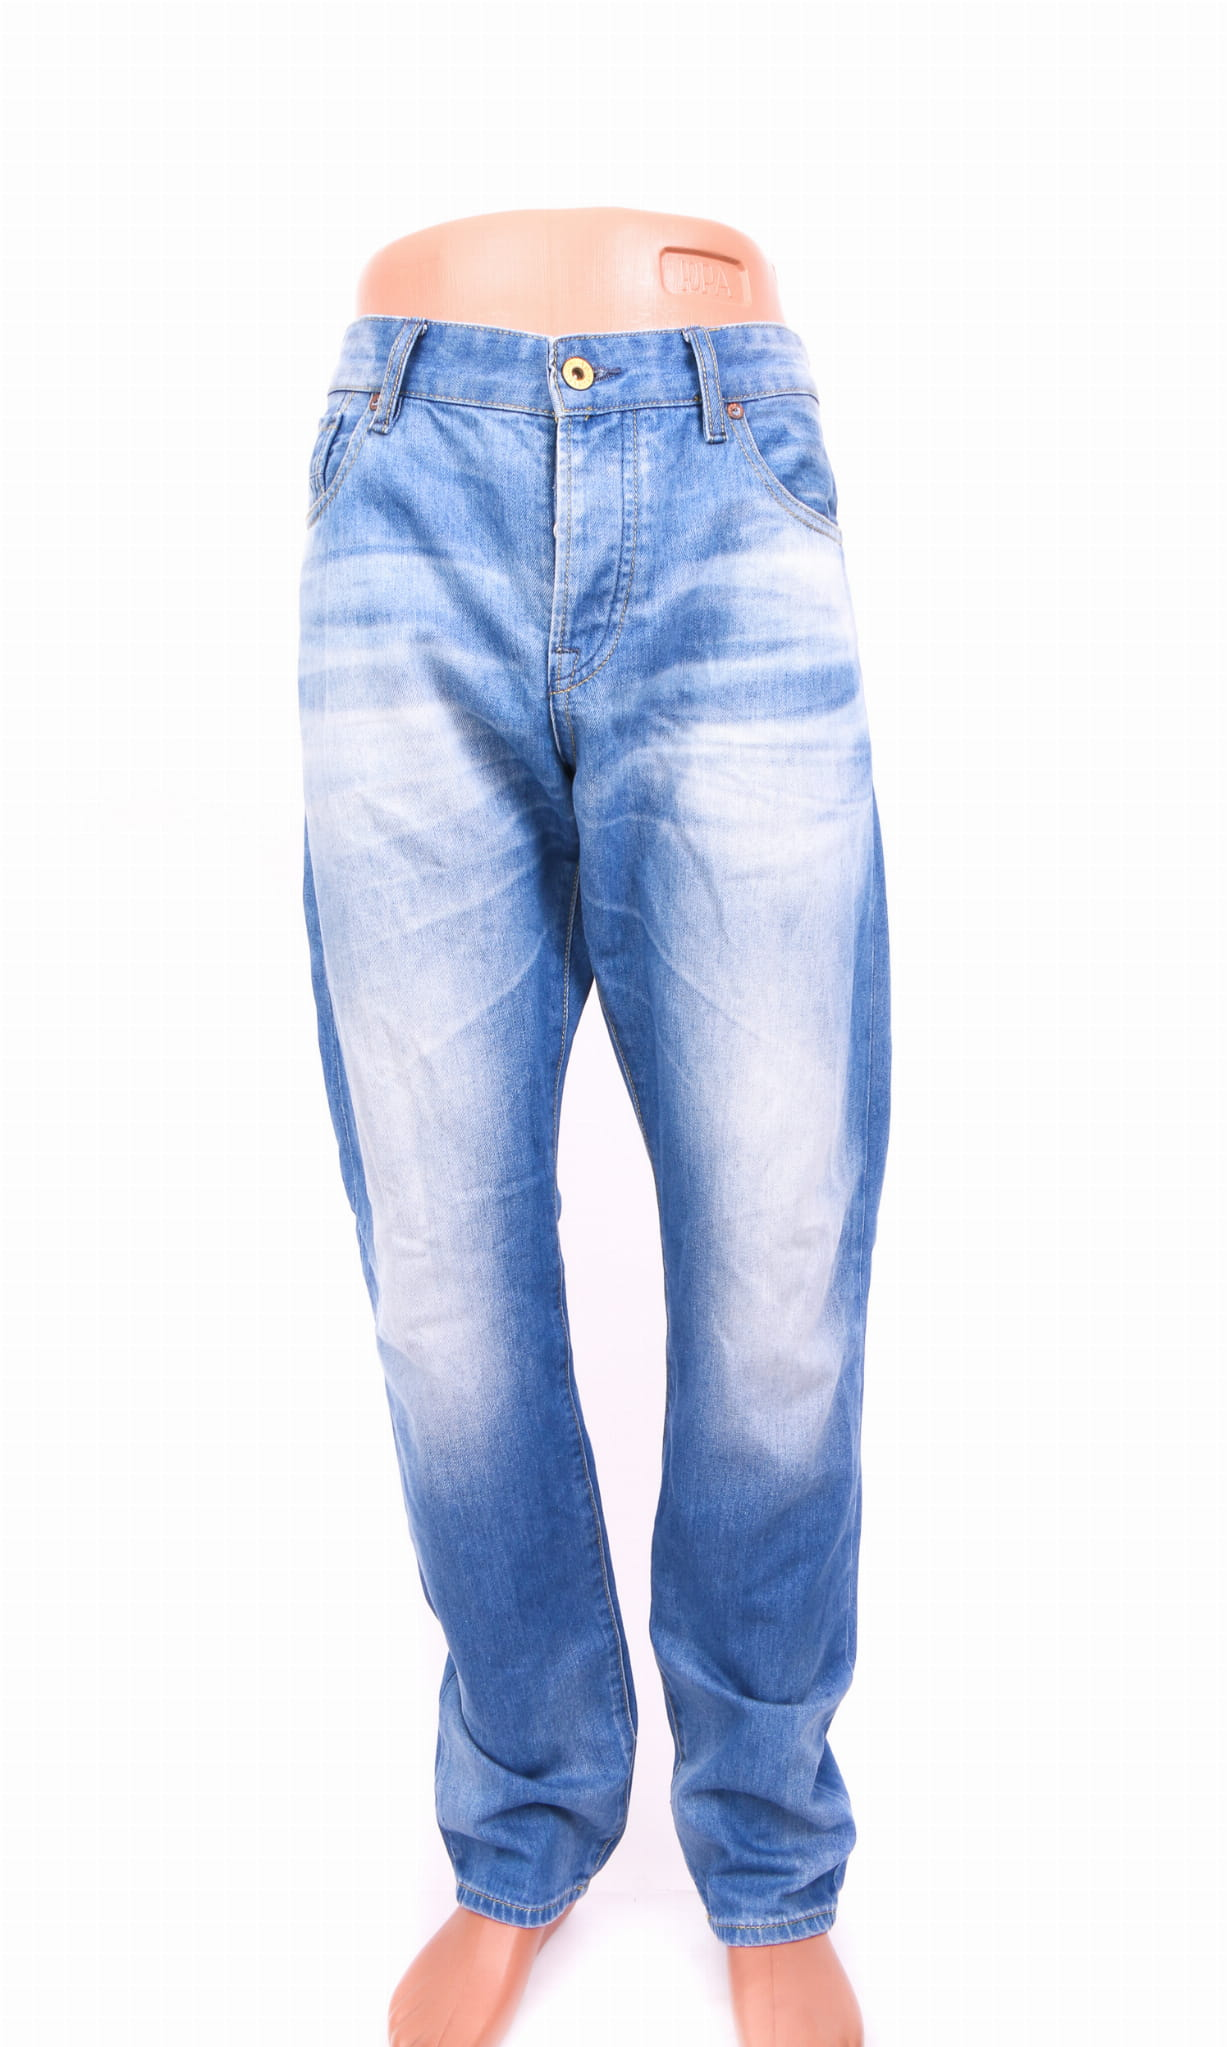 Jean Scotch Soda Scotch Soda Jeans Image Of Jeans